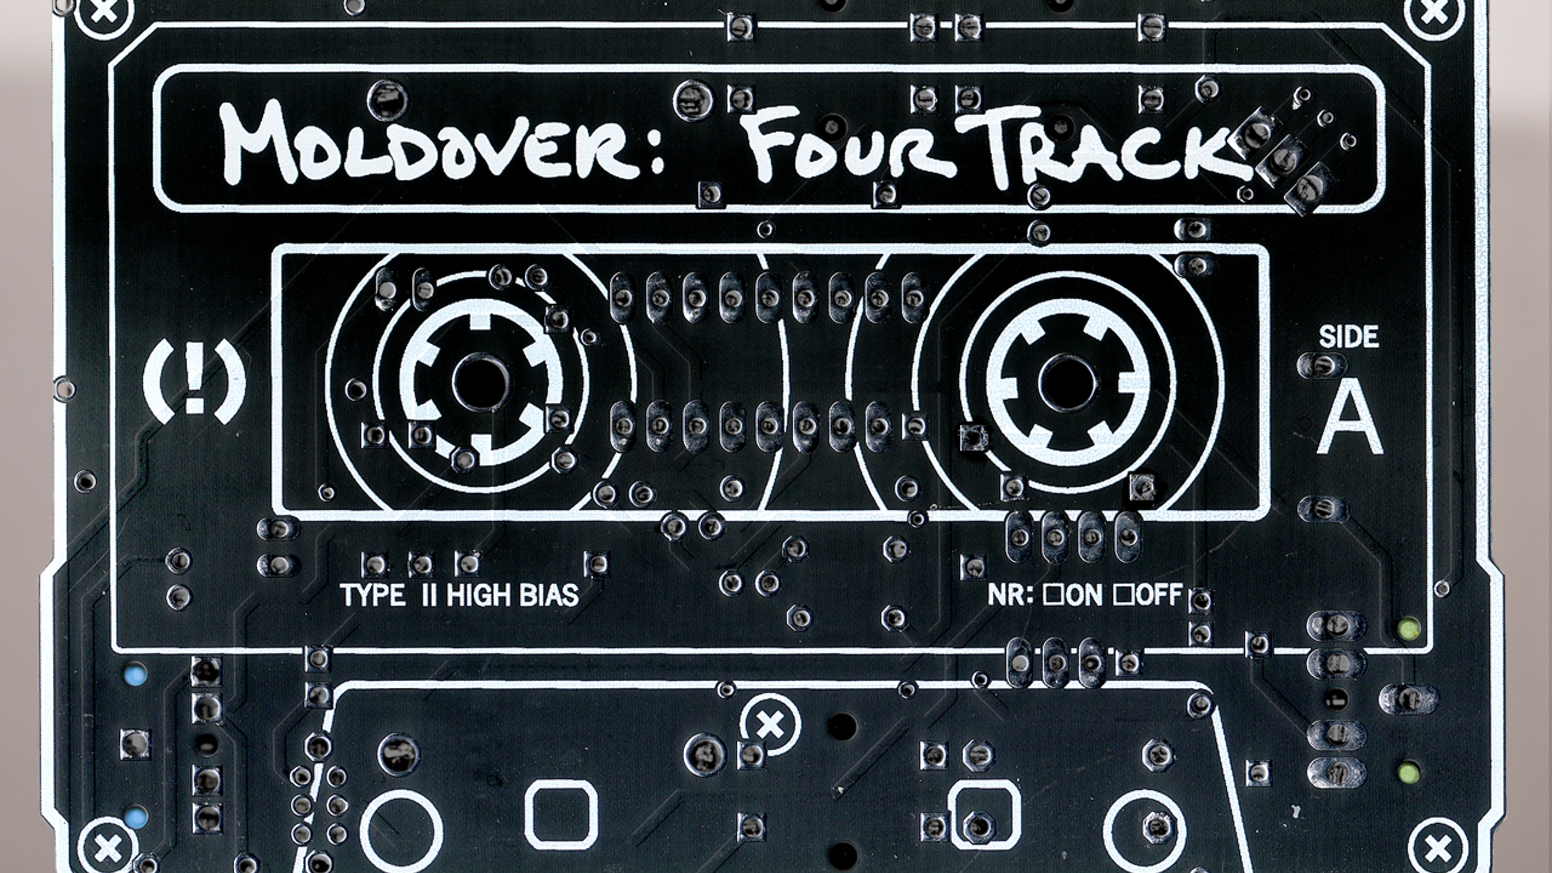 Musician, artist, and inventor MOLDOVER presents a new original album packaged in a playable circuit board instrument!